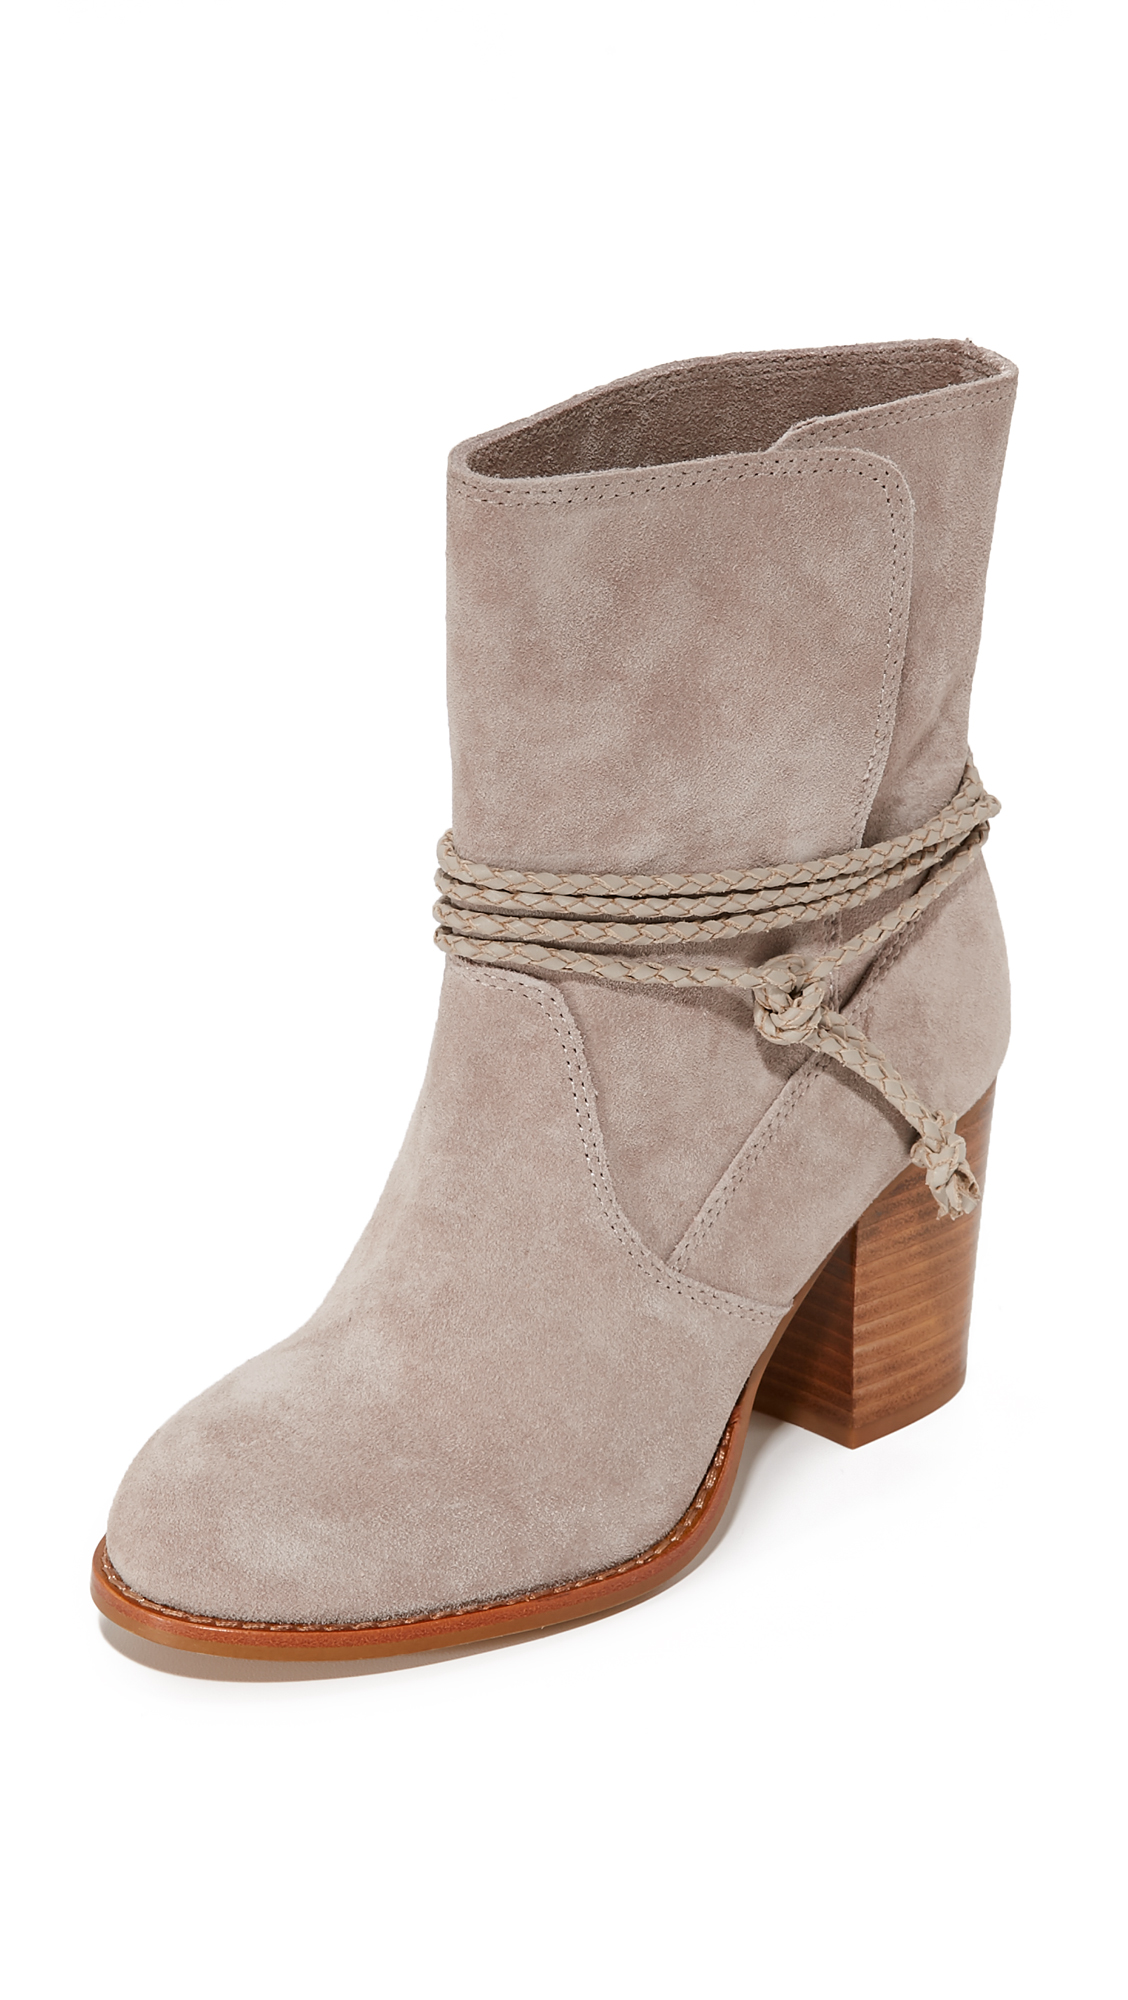 Splendid Larchmonte Slouchy Booties - Taupe